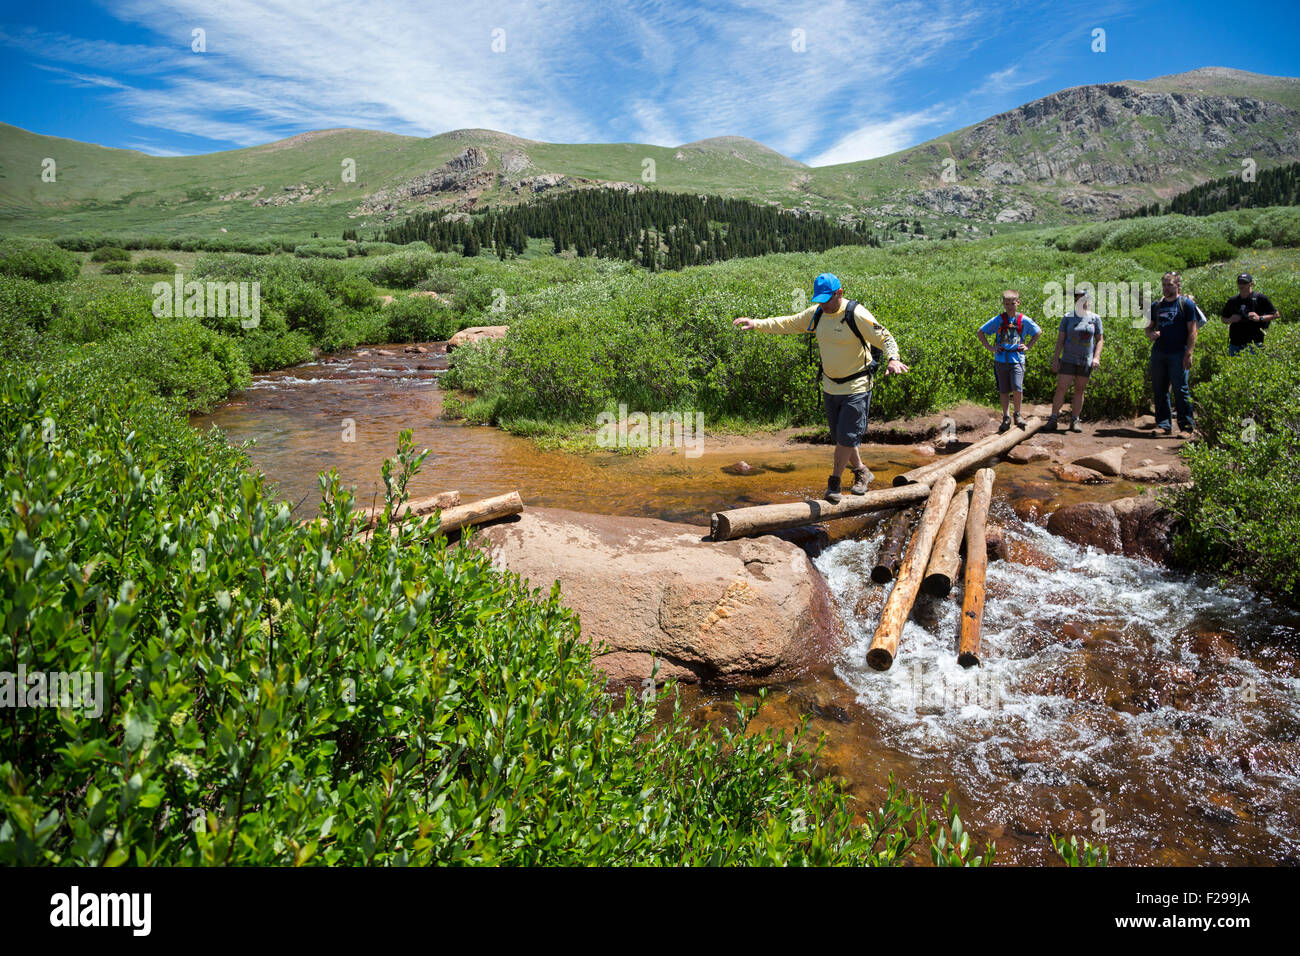 Georgetown, Colorado - Hikers balance on logs while crossing a stream on the trail from Guanella Pass to Mt. Bierstadt. - Stock Image